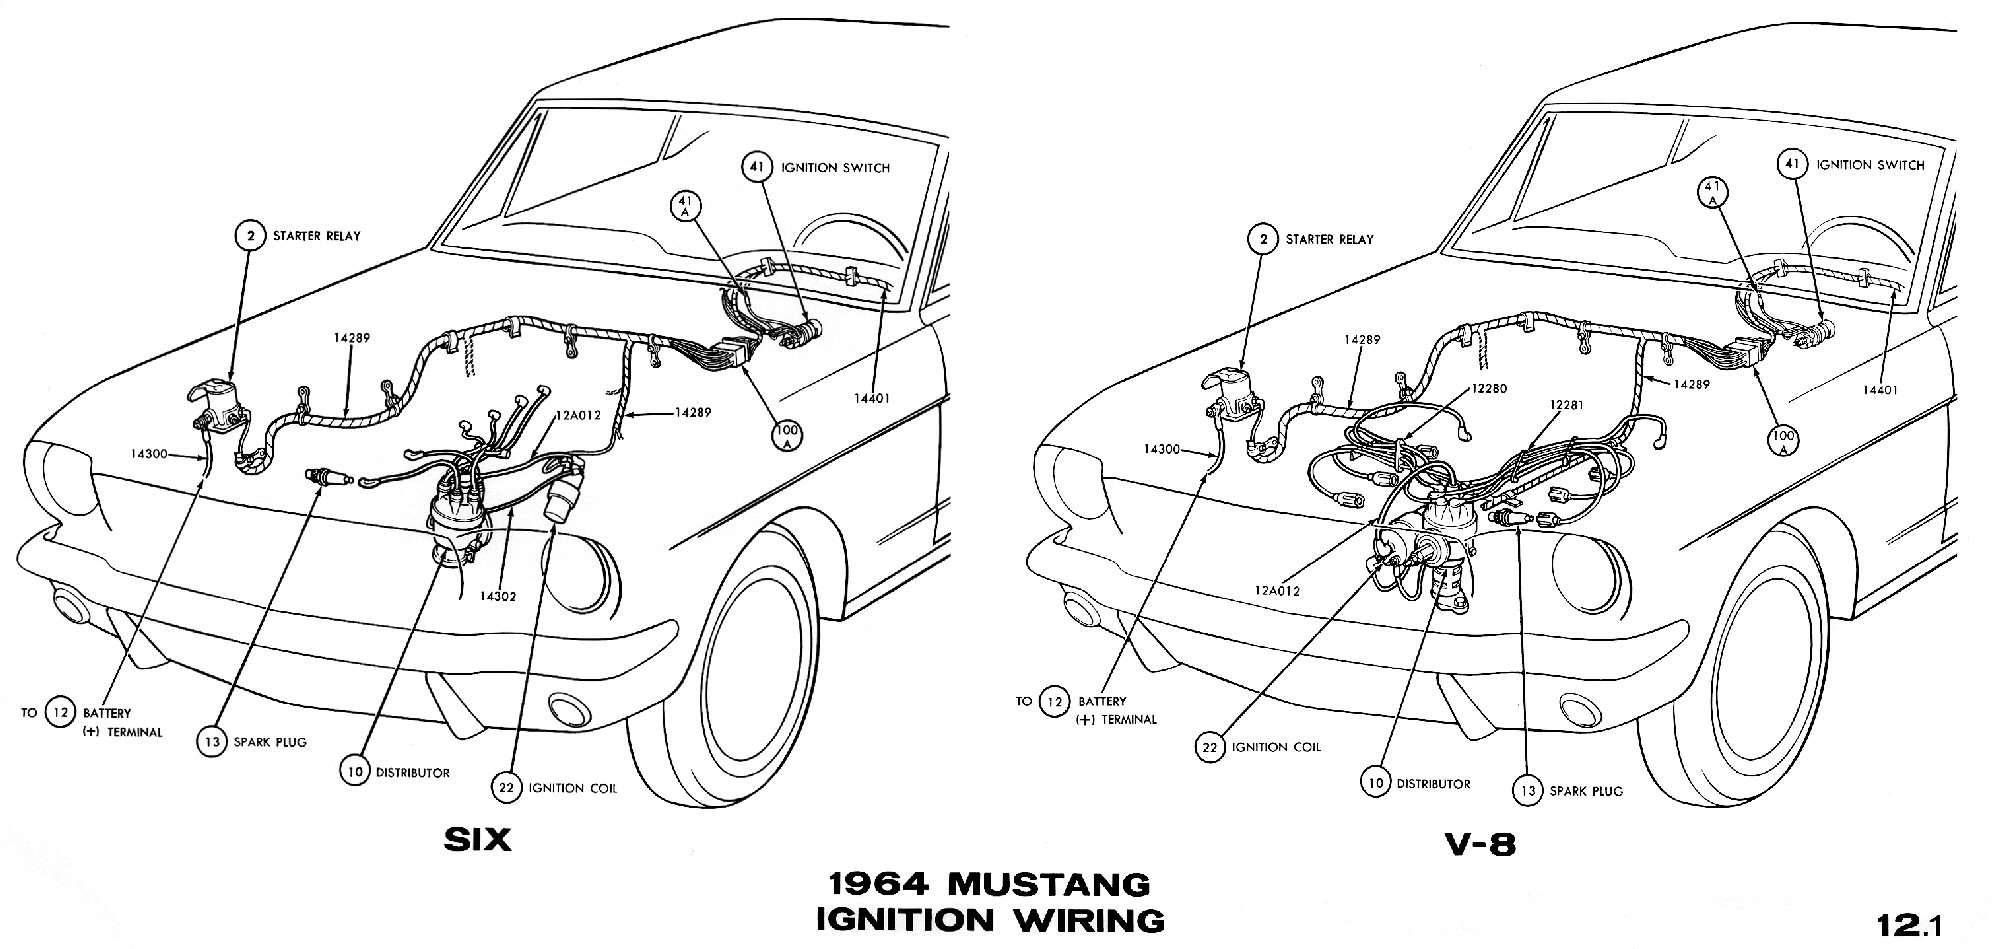 mustang wiring diagrams average joe restoration sm1964c 1964 mustang ignition wiring pictorial